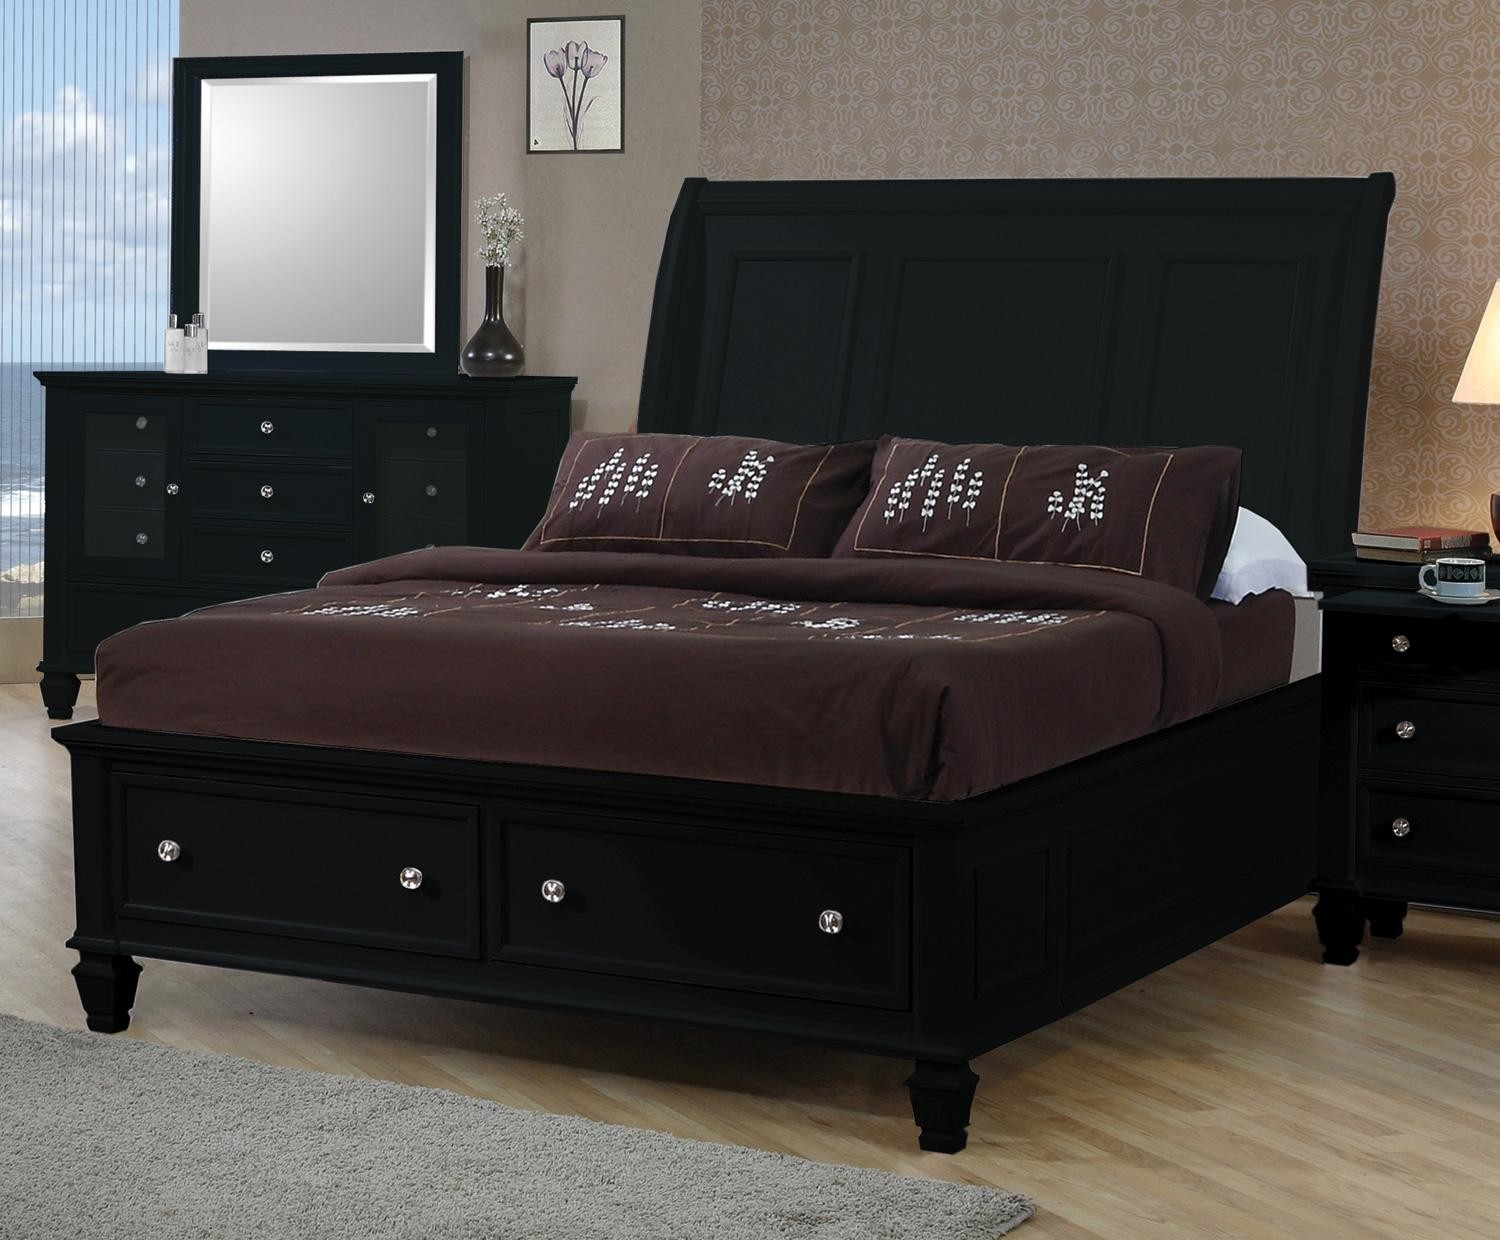 Sandy Beach Black King Sleigh Storage Bed From Coaster